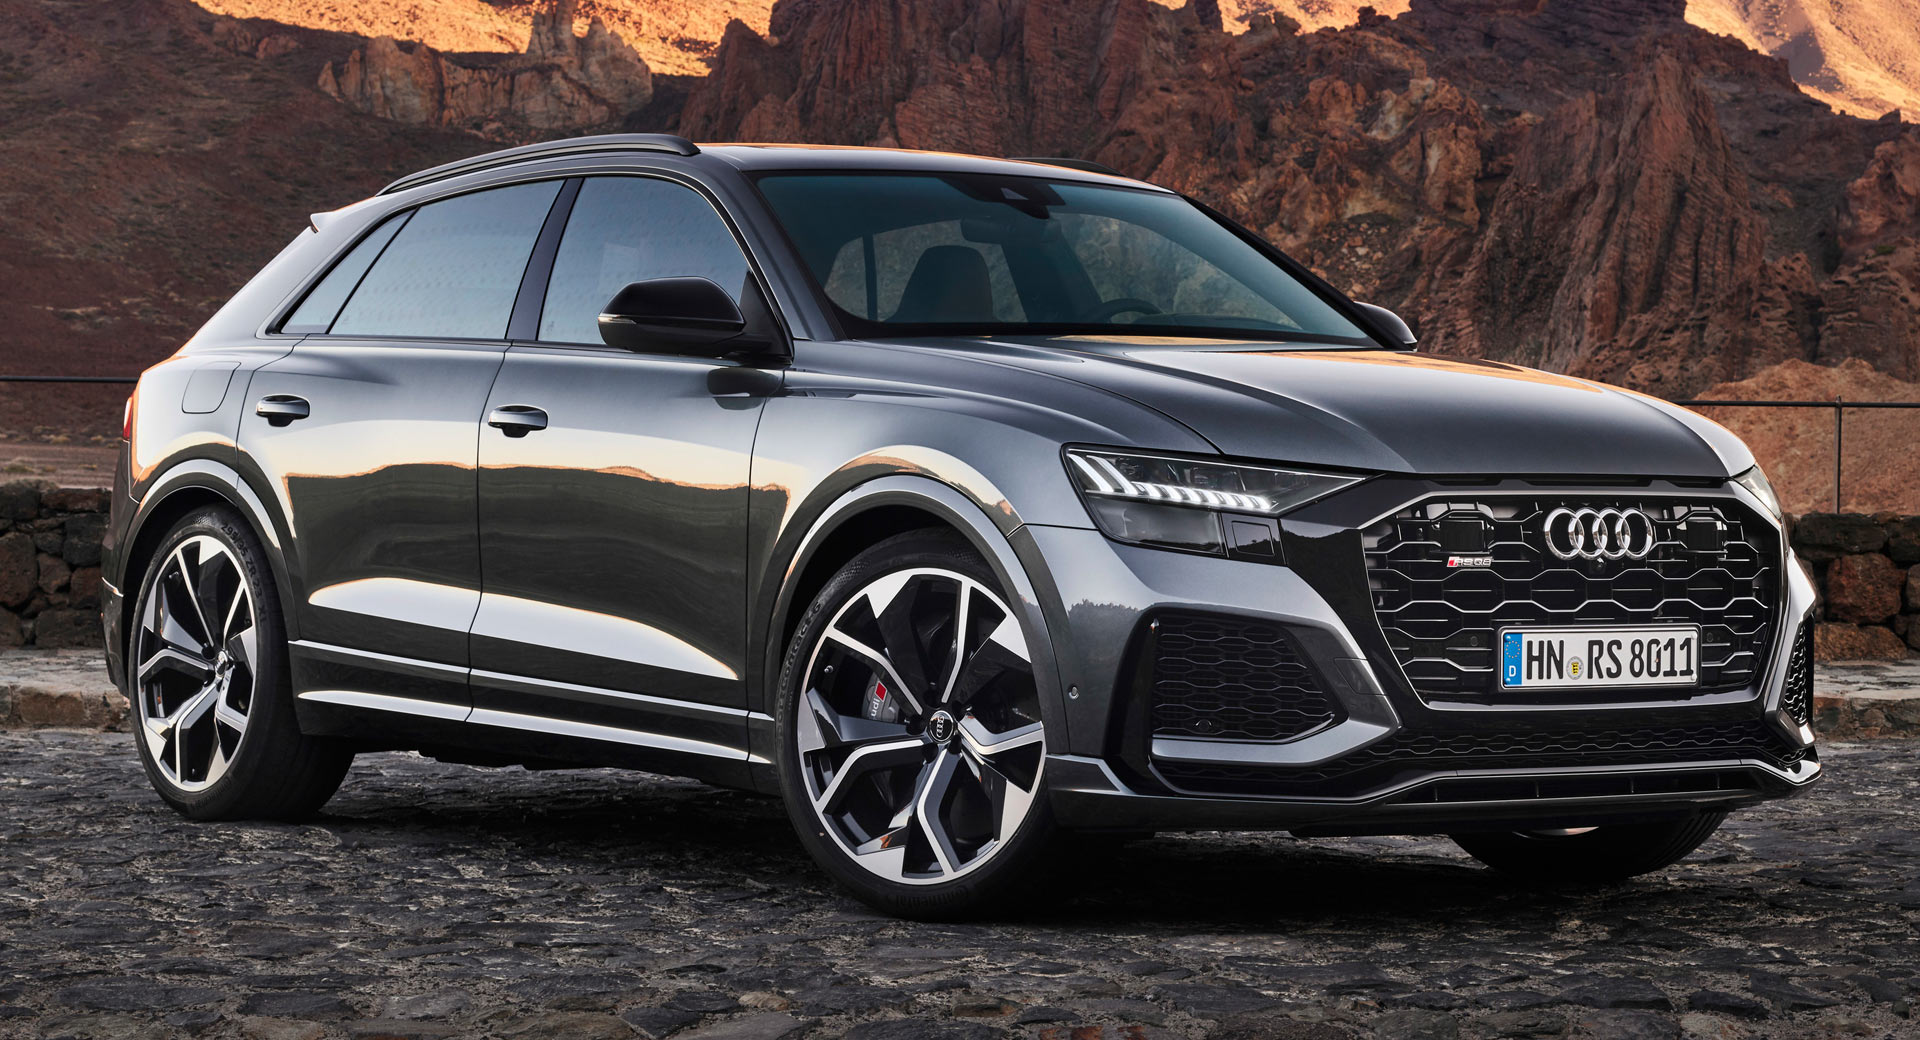 2020 Audi Rs Q8 Packs 591 Hp And A 113 000 Price Tag Carscoops